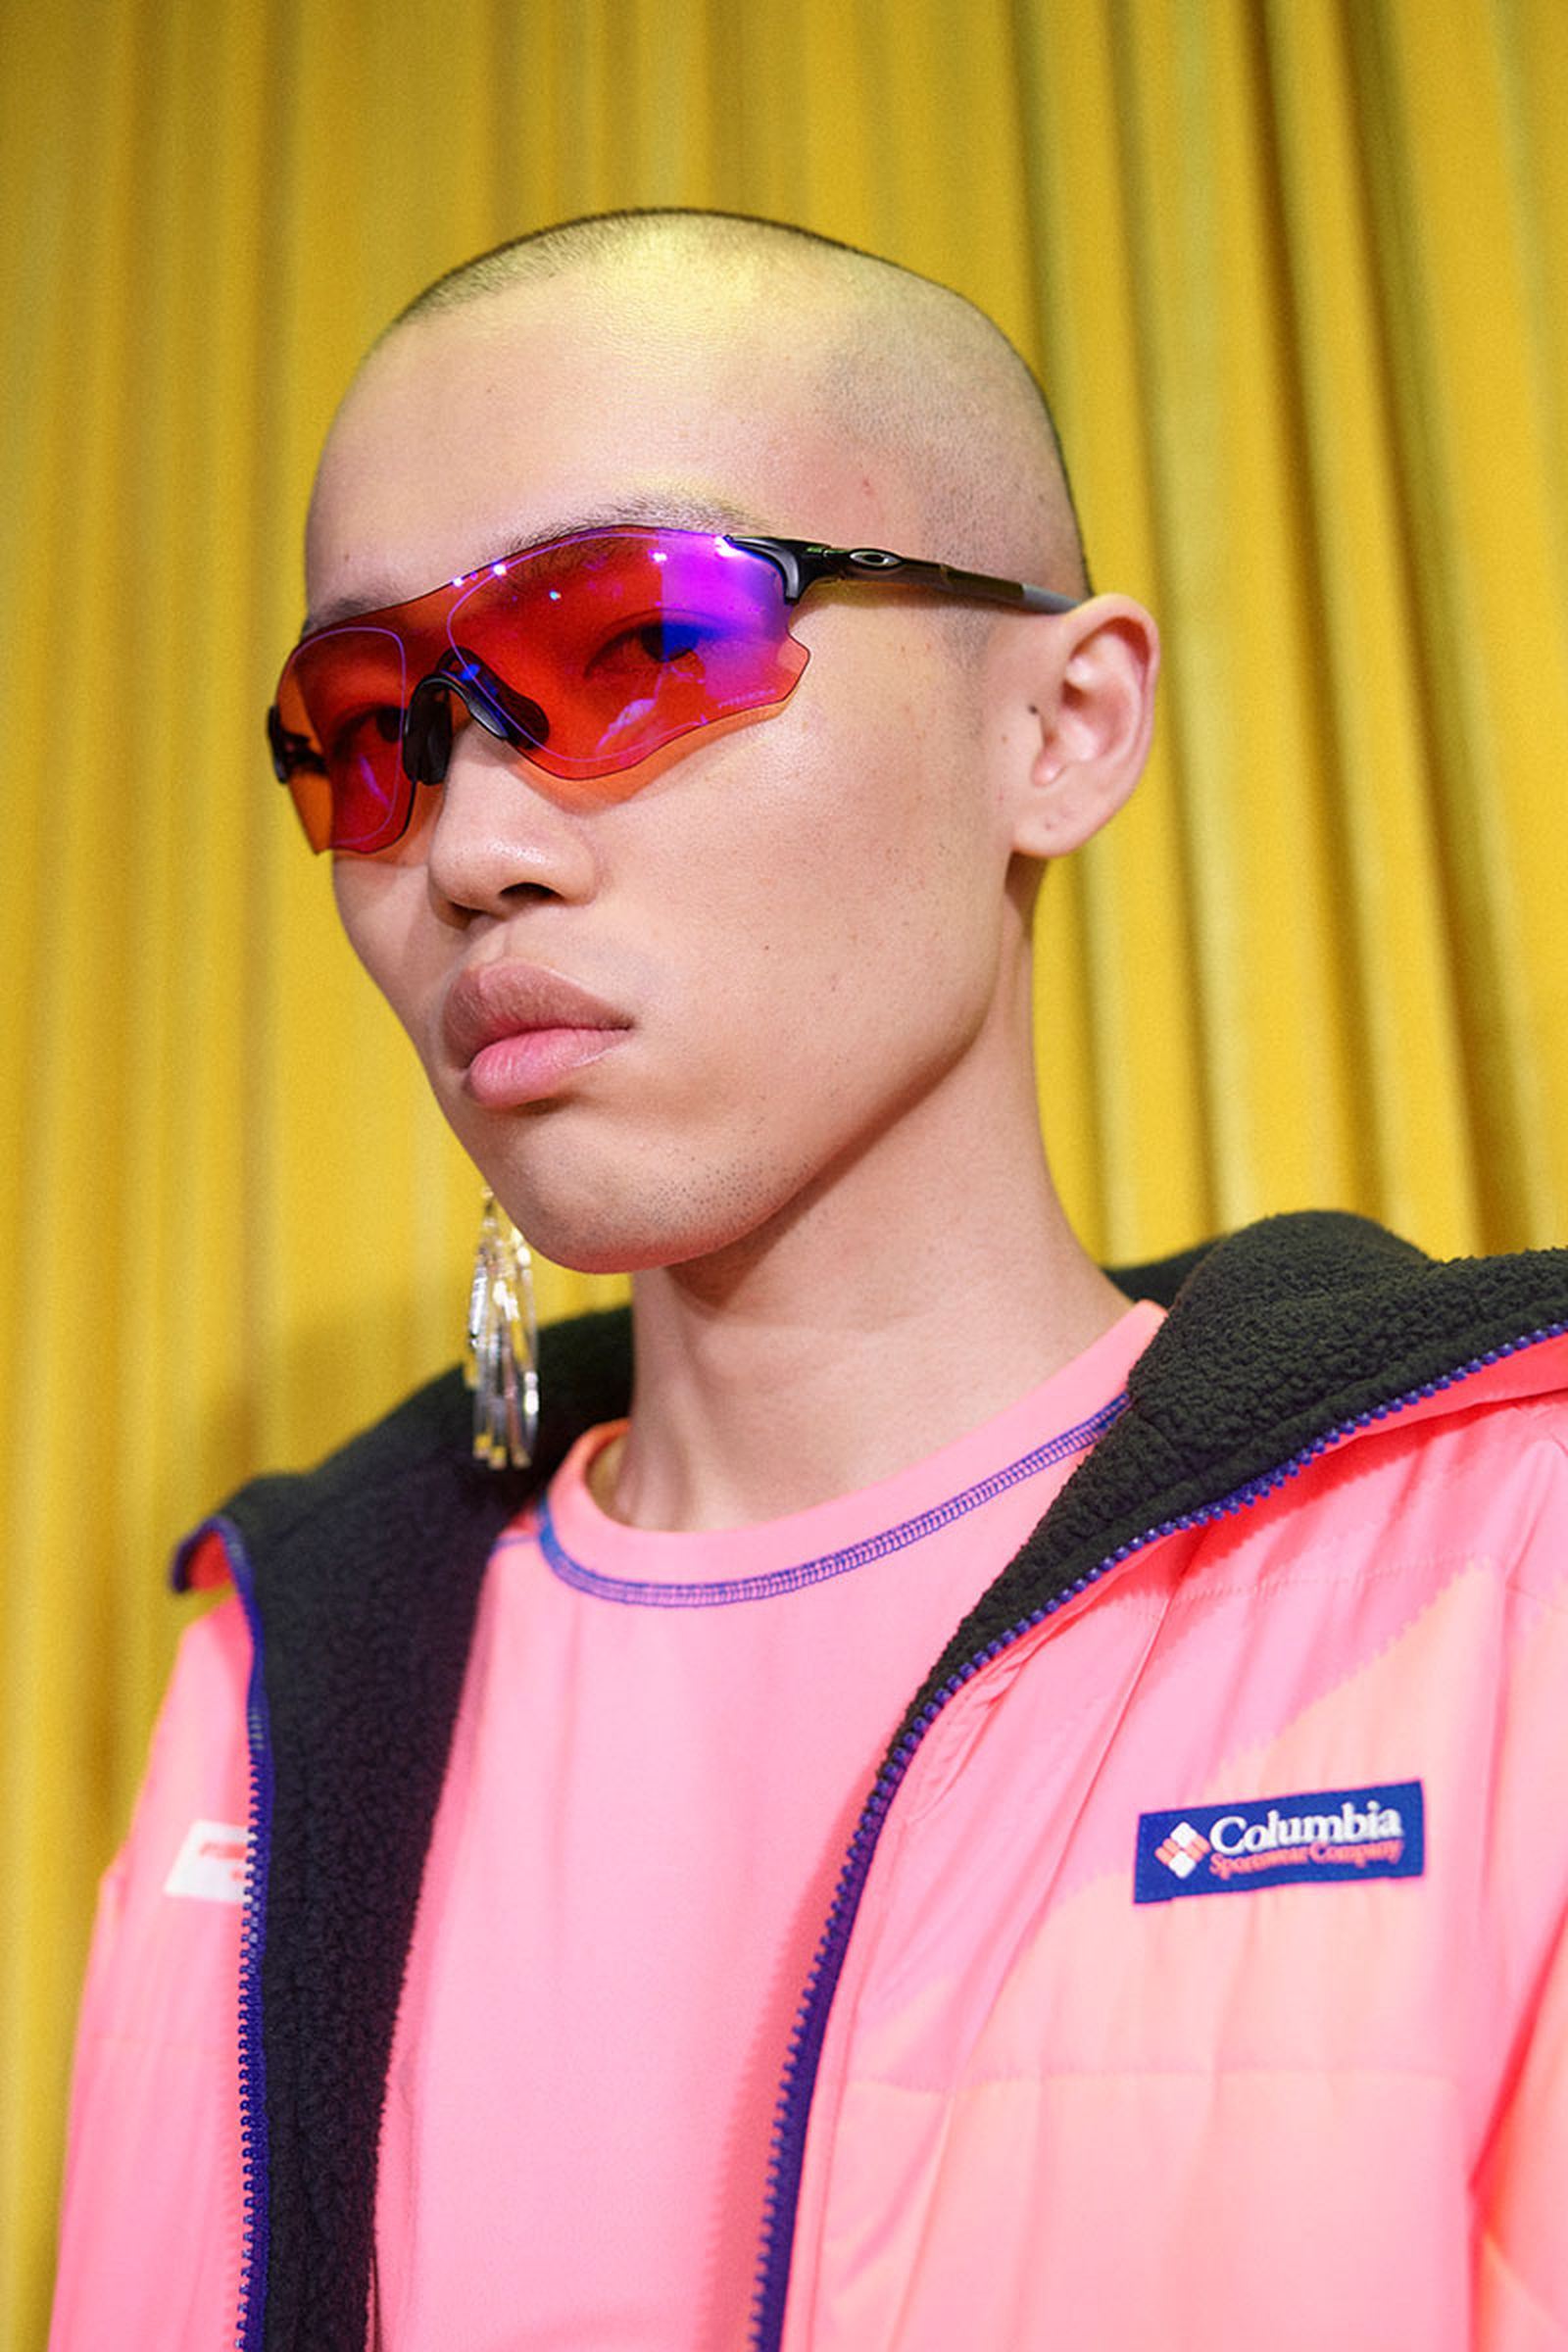 oakley OC runway Paris Fashion Week SS19 Pharrell Williams cycling sunglasses